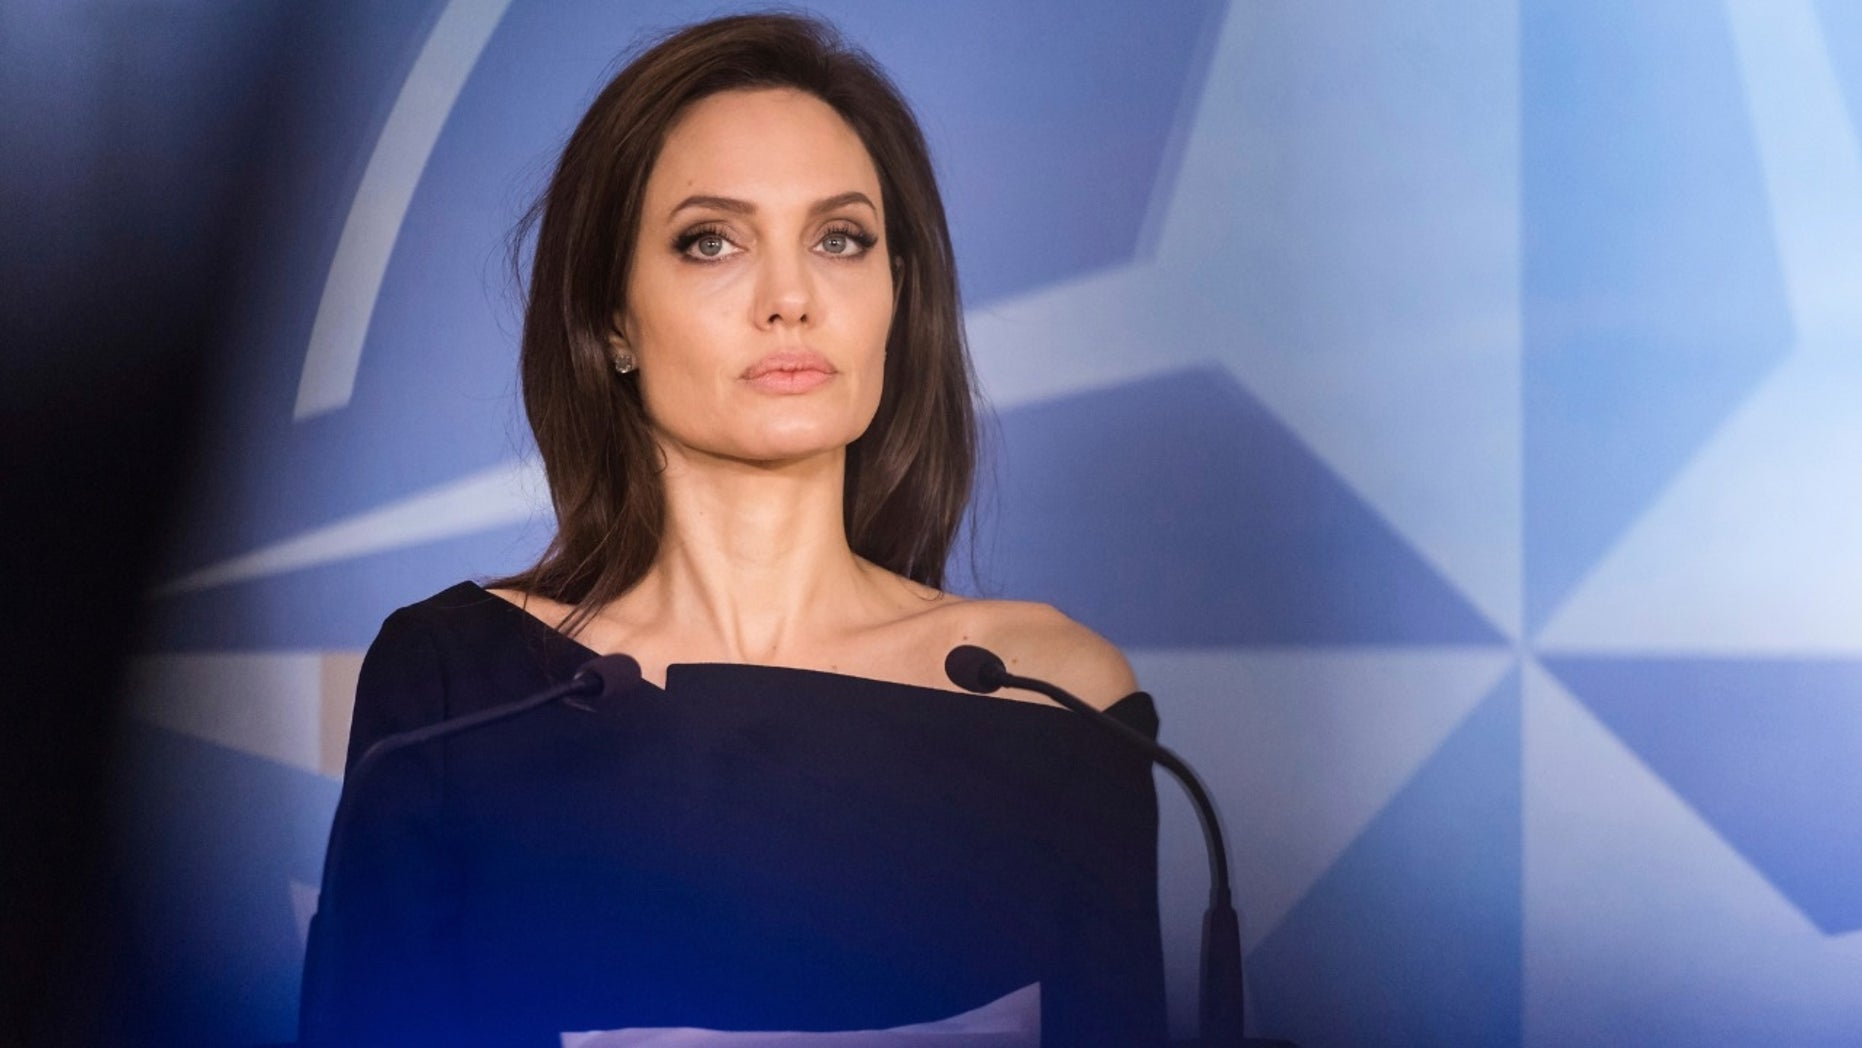 Angelina Jolie hinted she was considering shifting to politics.